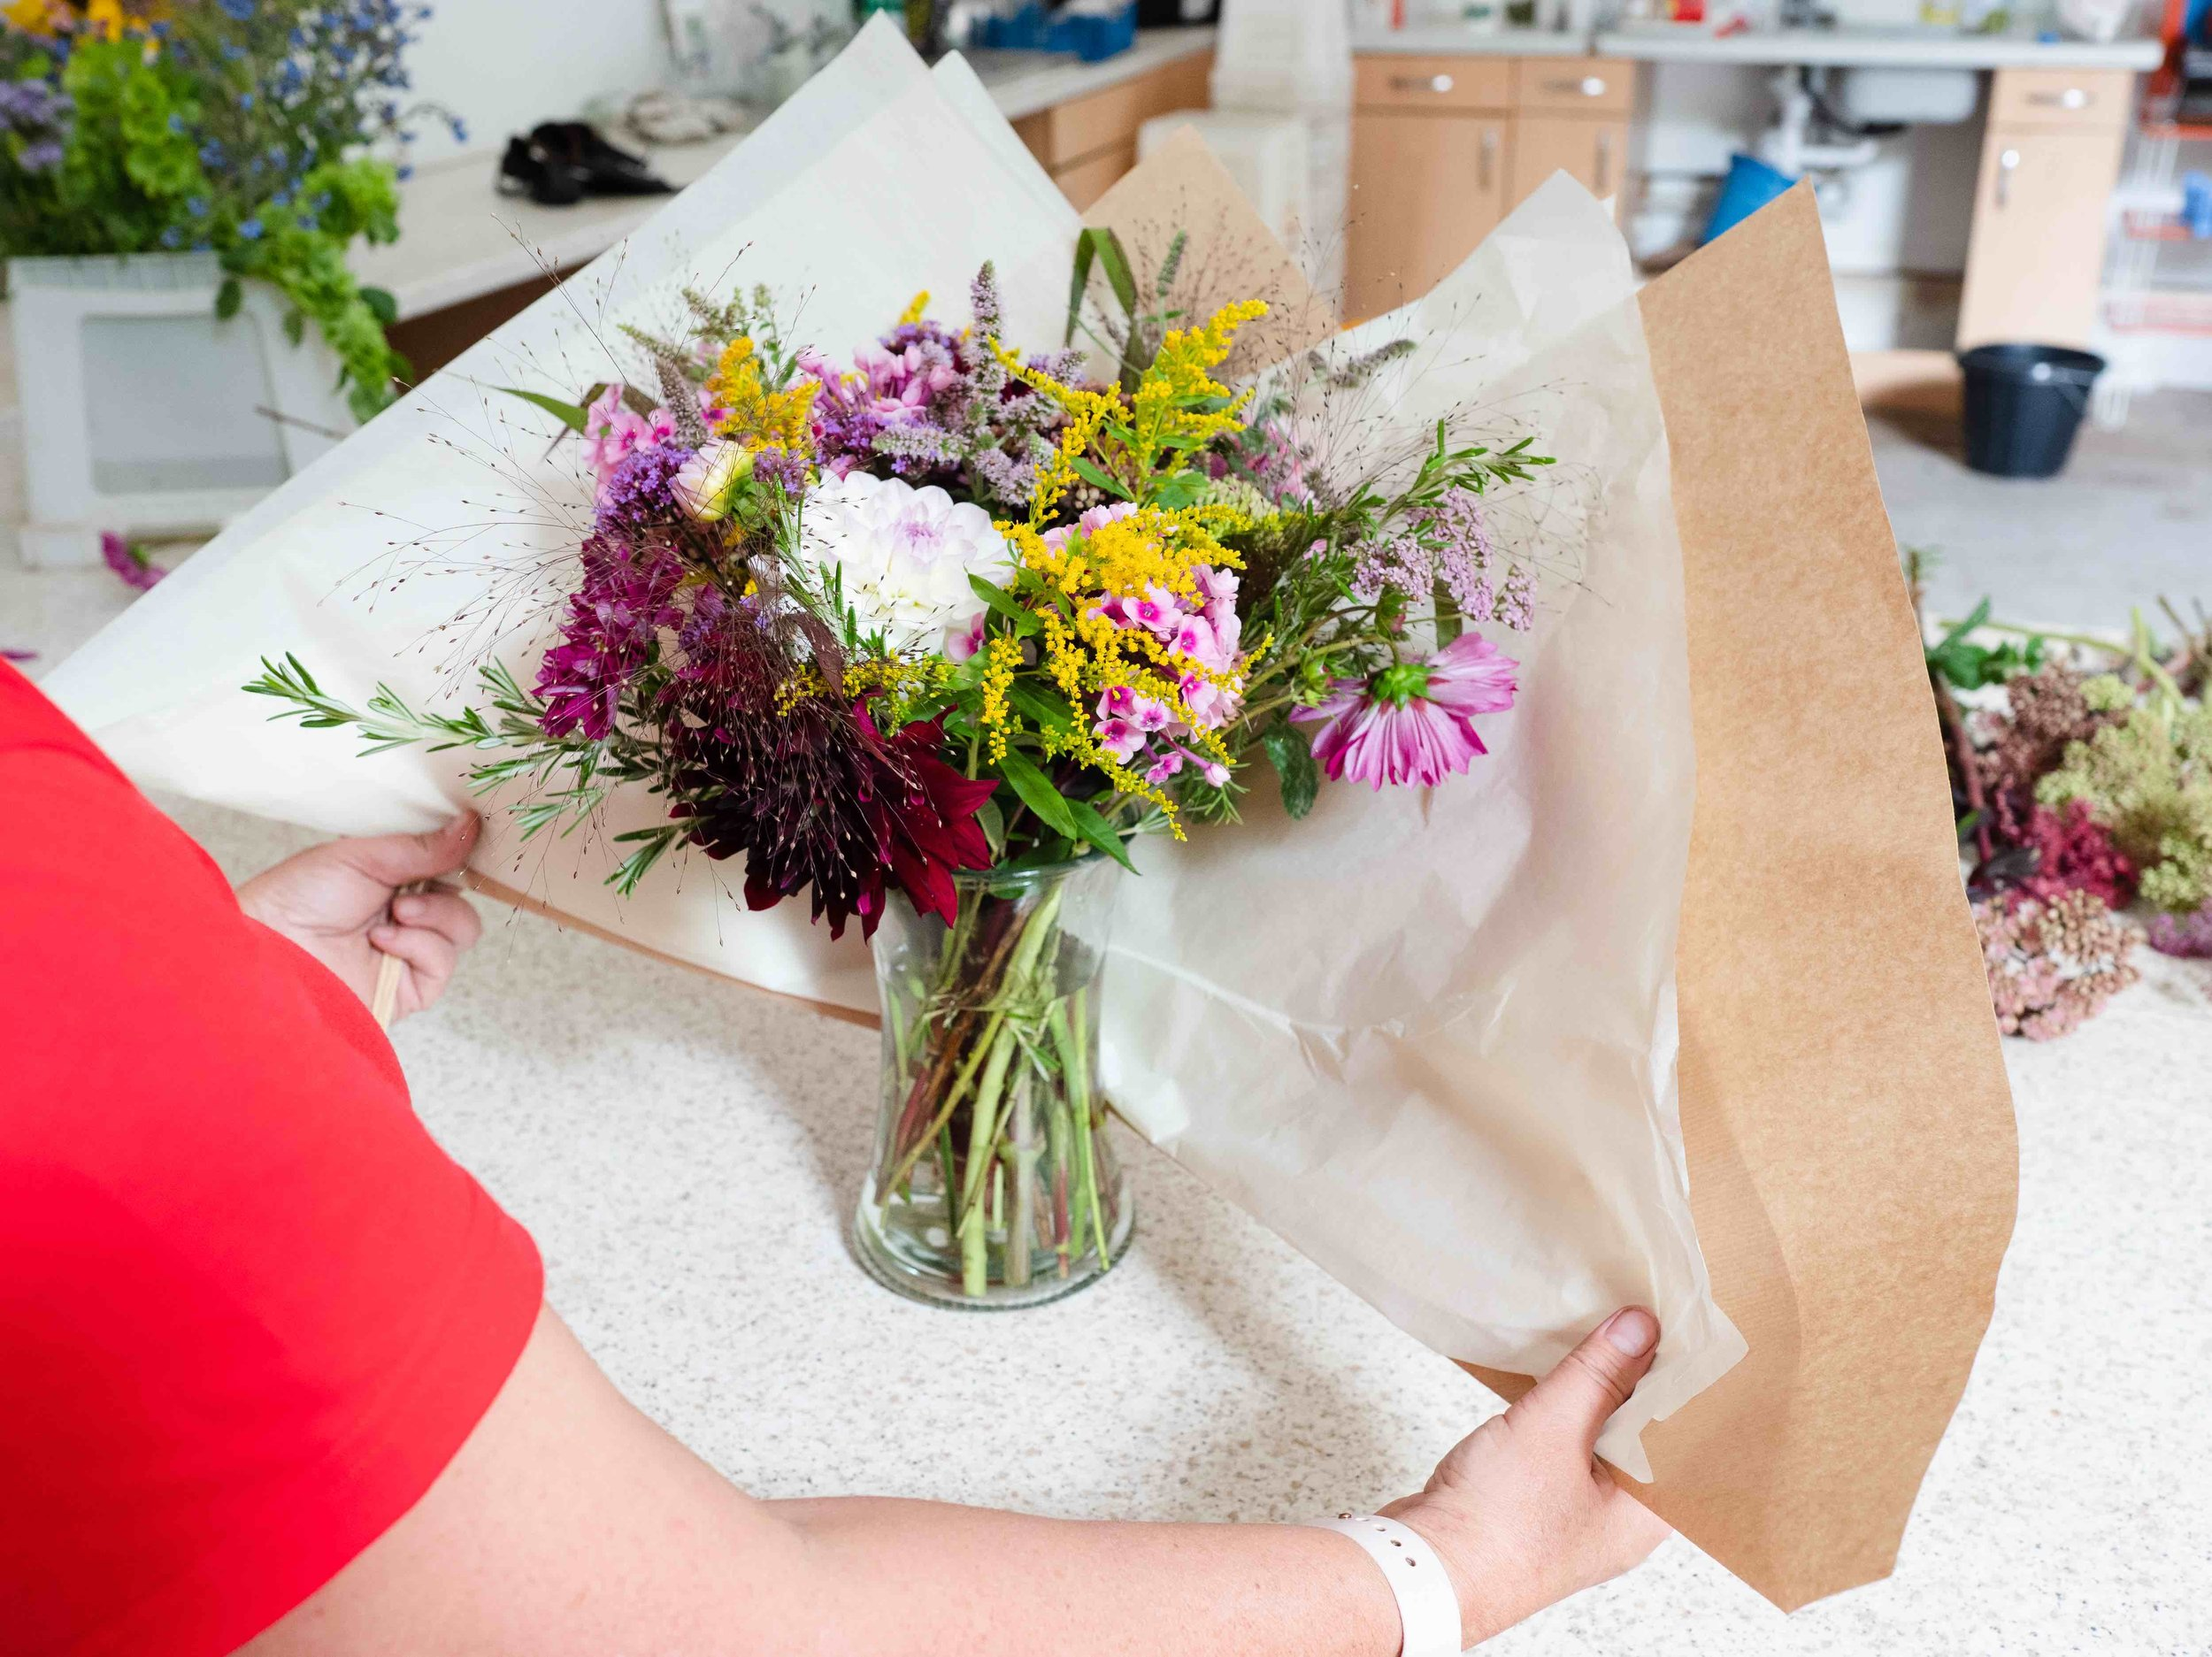 Bouquet wrapping.jpg